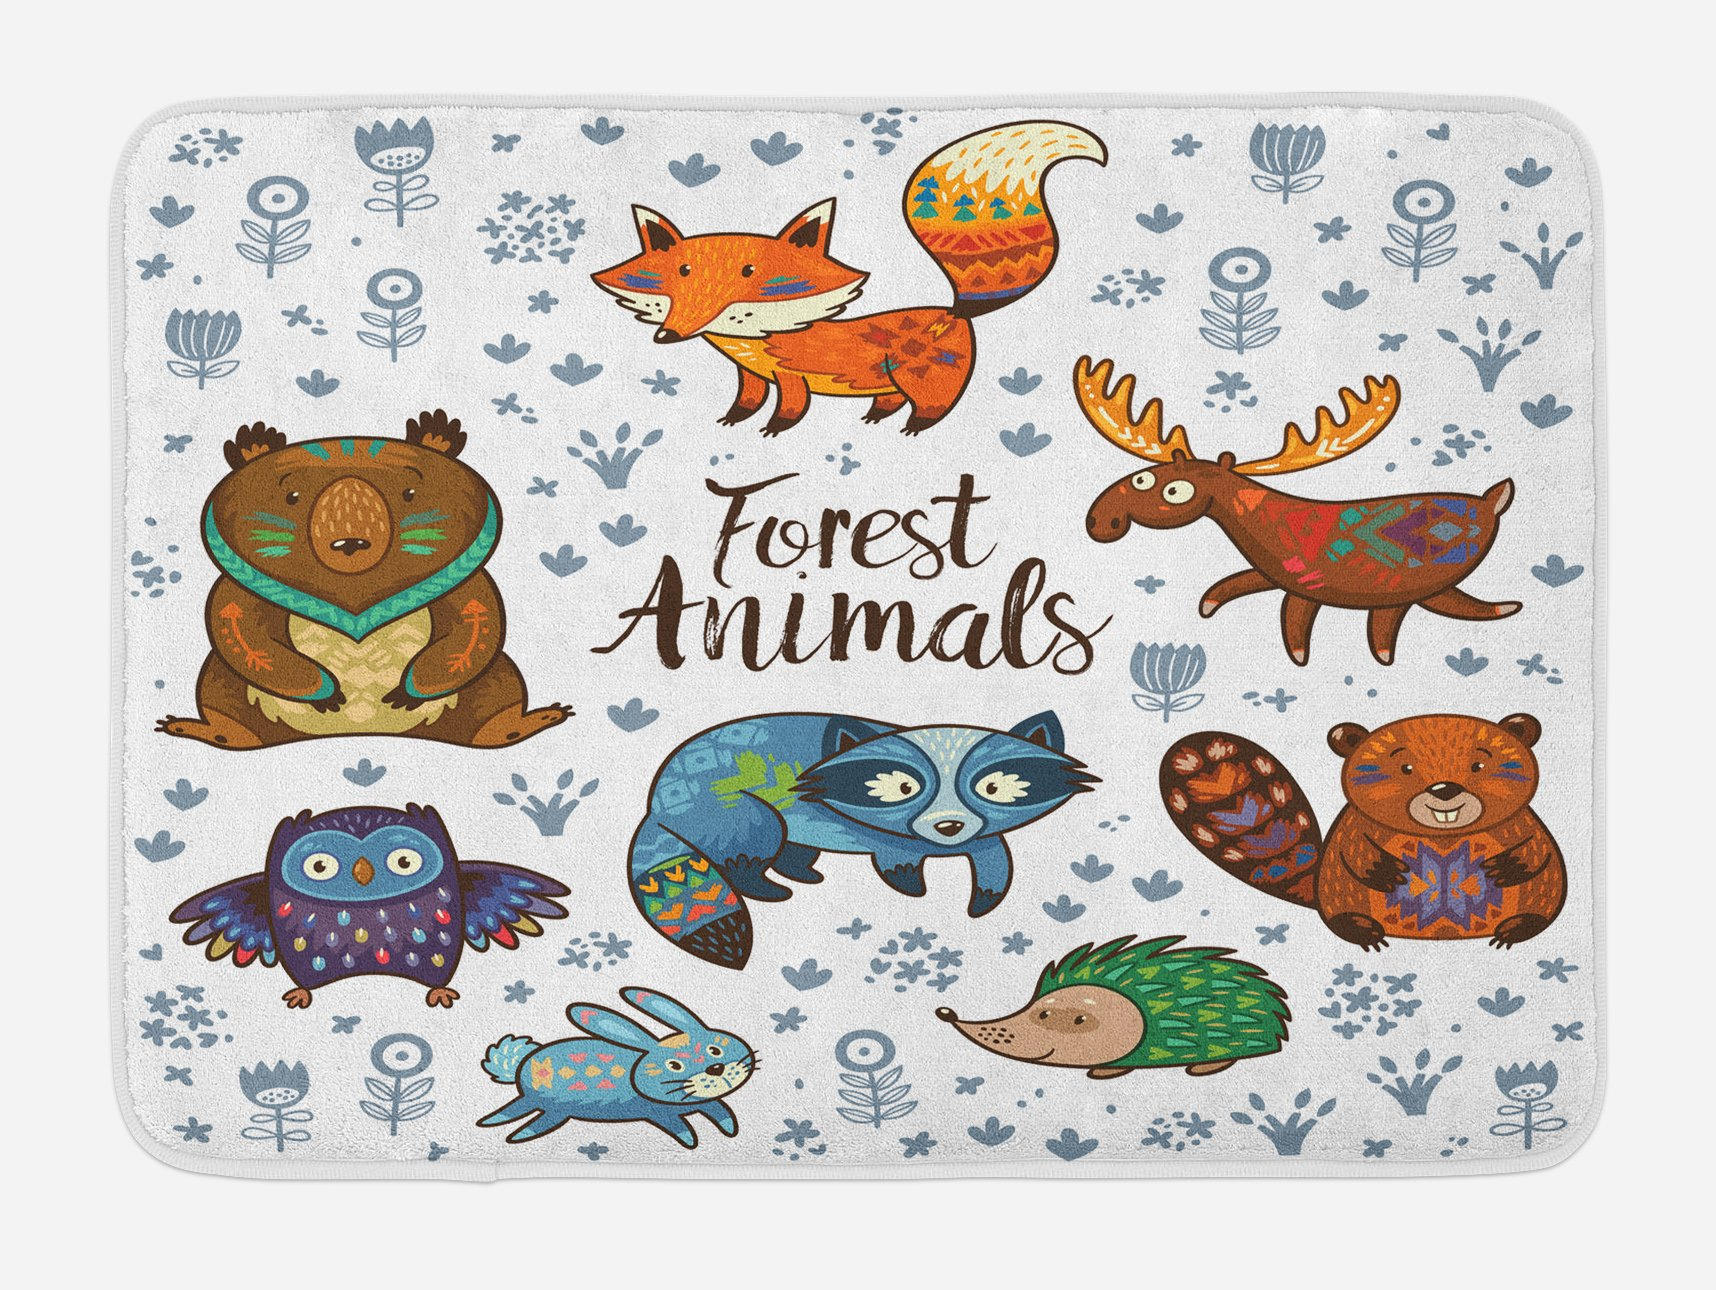 Lunarable Moose Bath Mat, an Assortment of Cute Animals Fox Elk Badger Raccoon Owl Hedgehog and Bunny Happy, Plush Bathroom Decor Mat with Non Slip Backing, 29.5 W X 17.5 W Inches, Multicolor by Lunarable (Image #1)